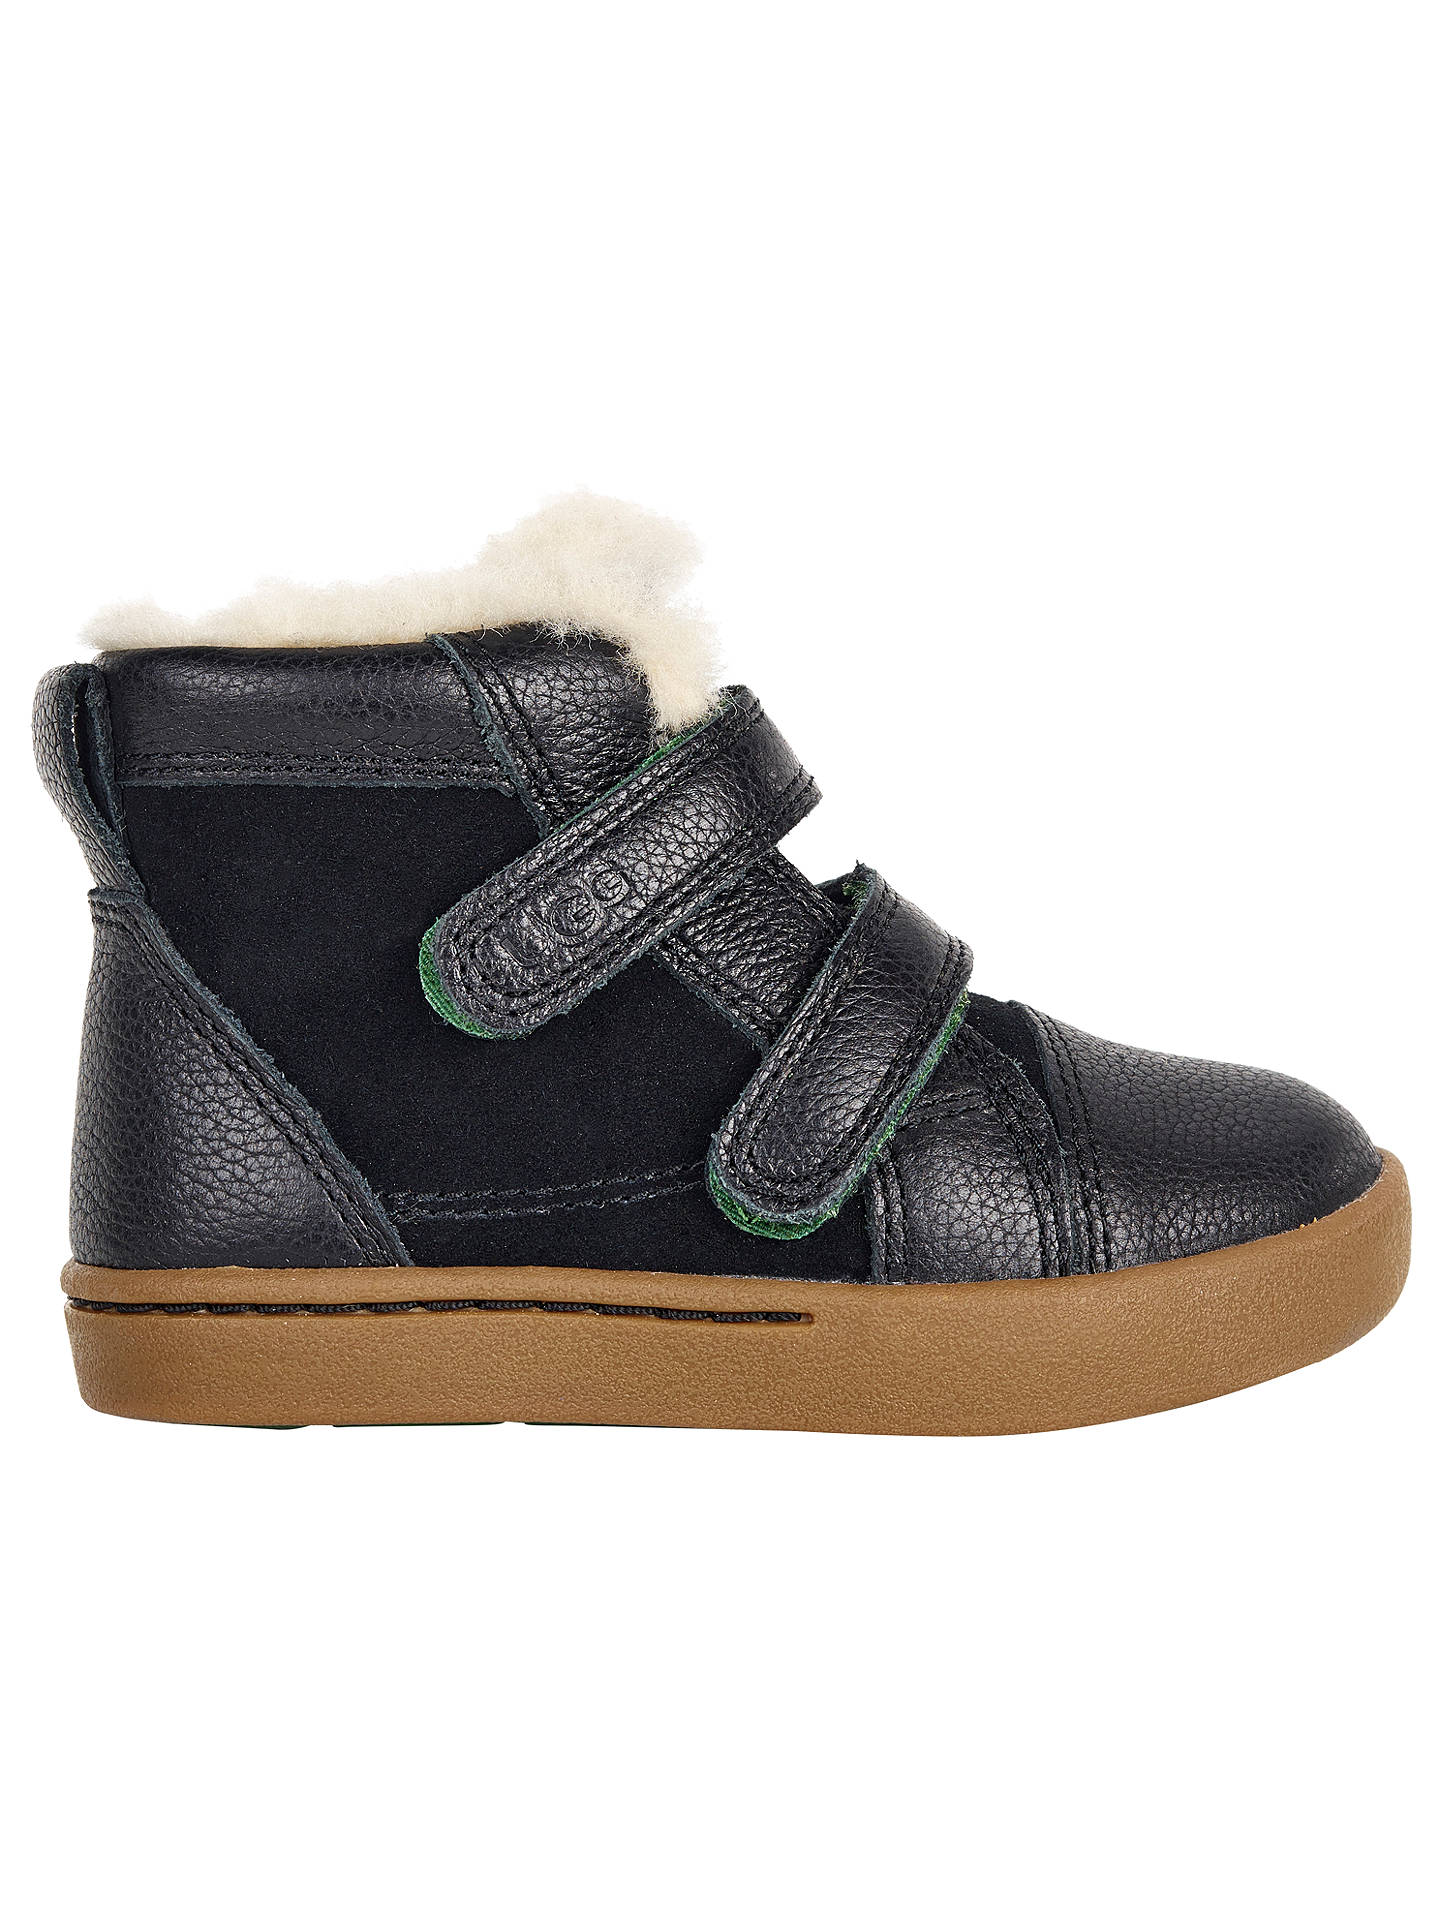 980dad7b539c Buy UGG Children s Rennon High-Top Trainers